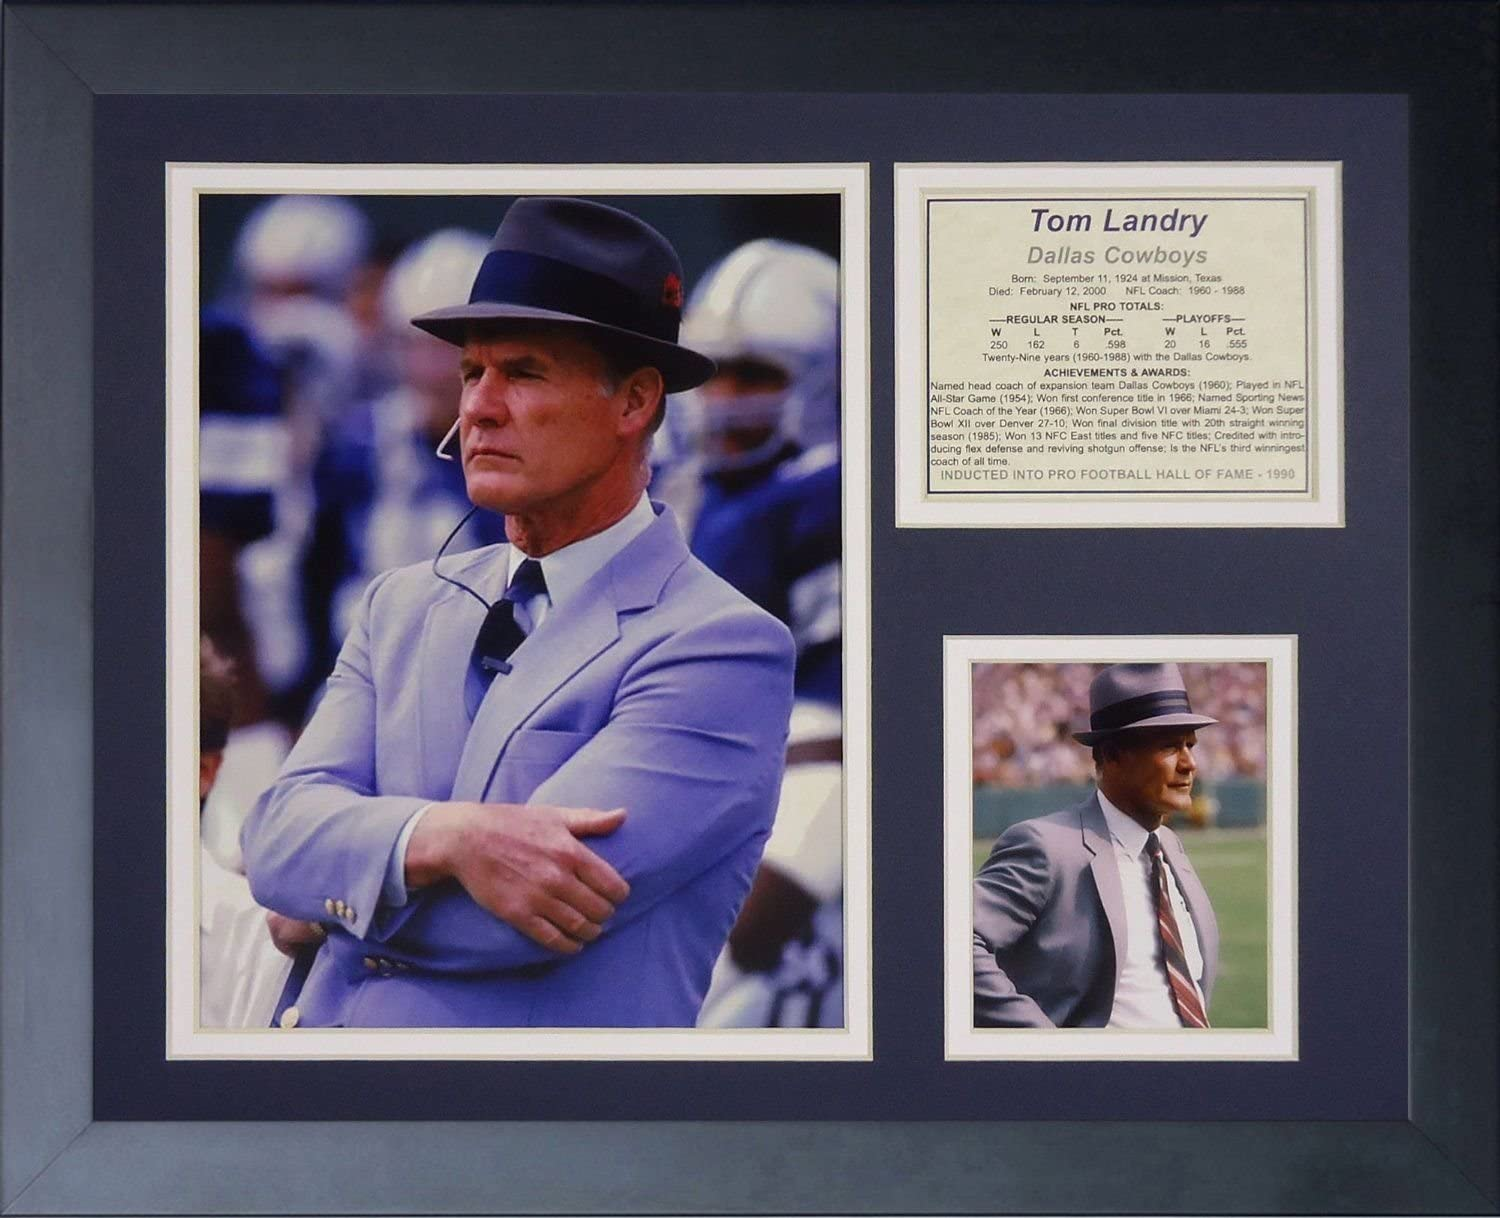 11x14 FRAMED DALLAS COWBOYS TOM LANDRY 8X10 PHOTO AWARDS LIST SUPER BOWL Vich XXII